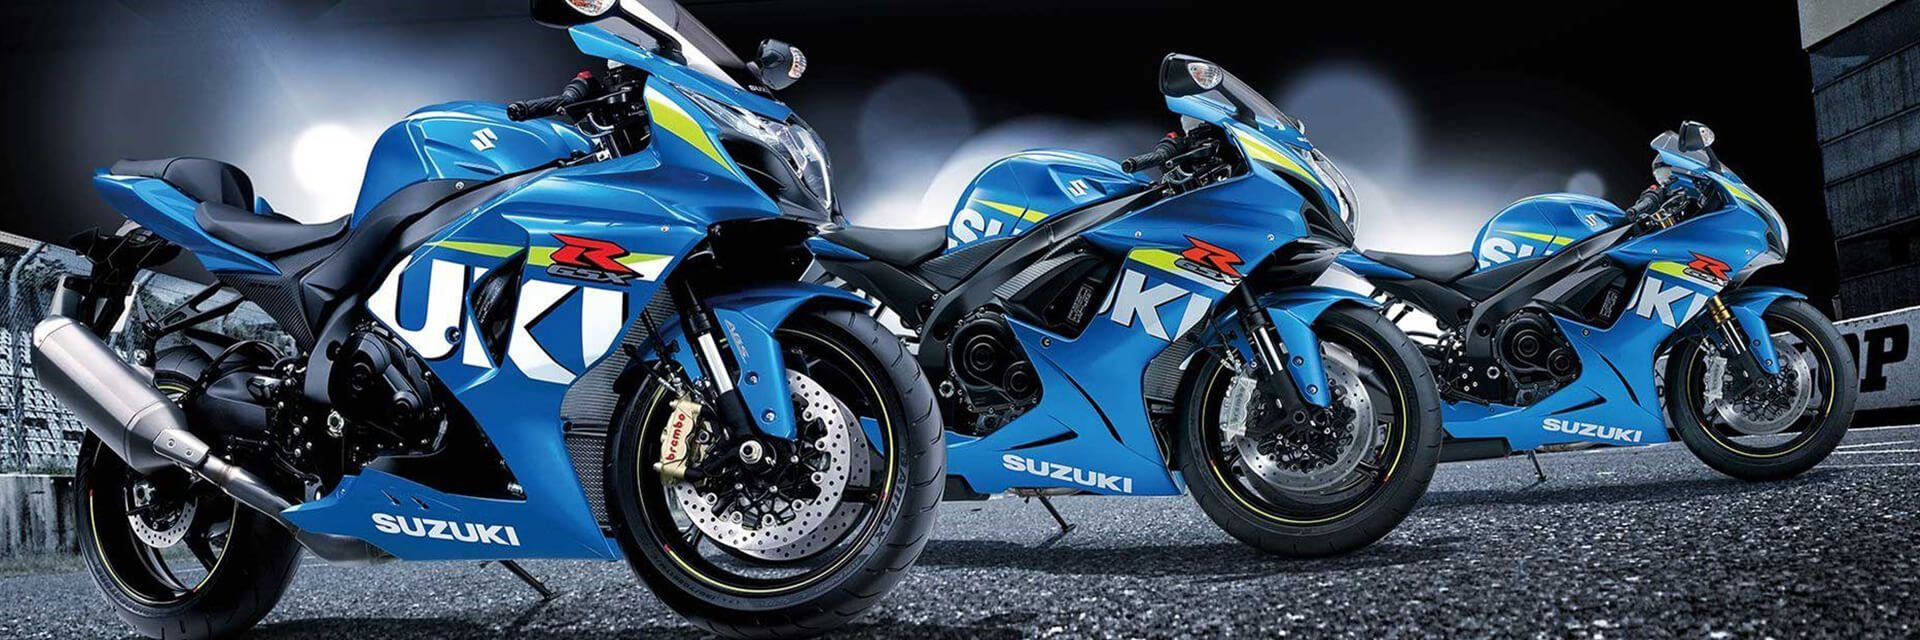 Shop New Motorcycles For Sale at S&N Motorsports in Port Charlotte, FL